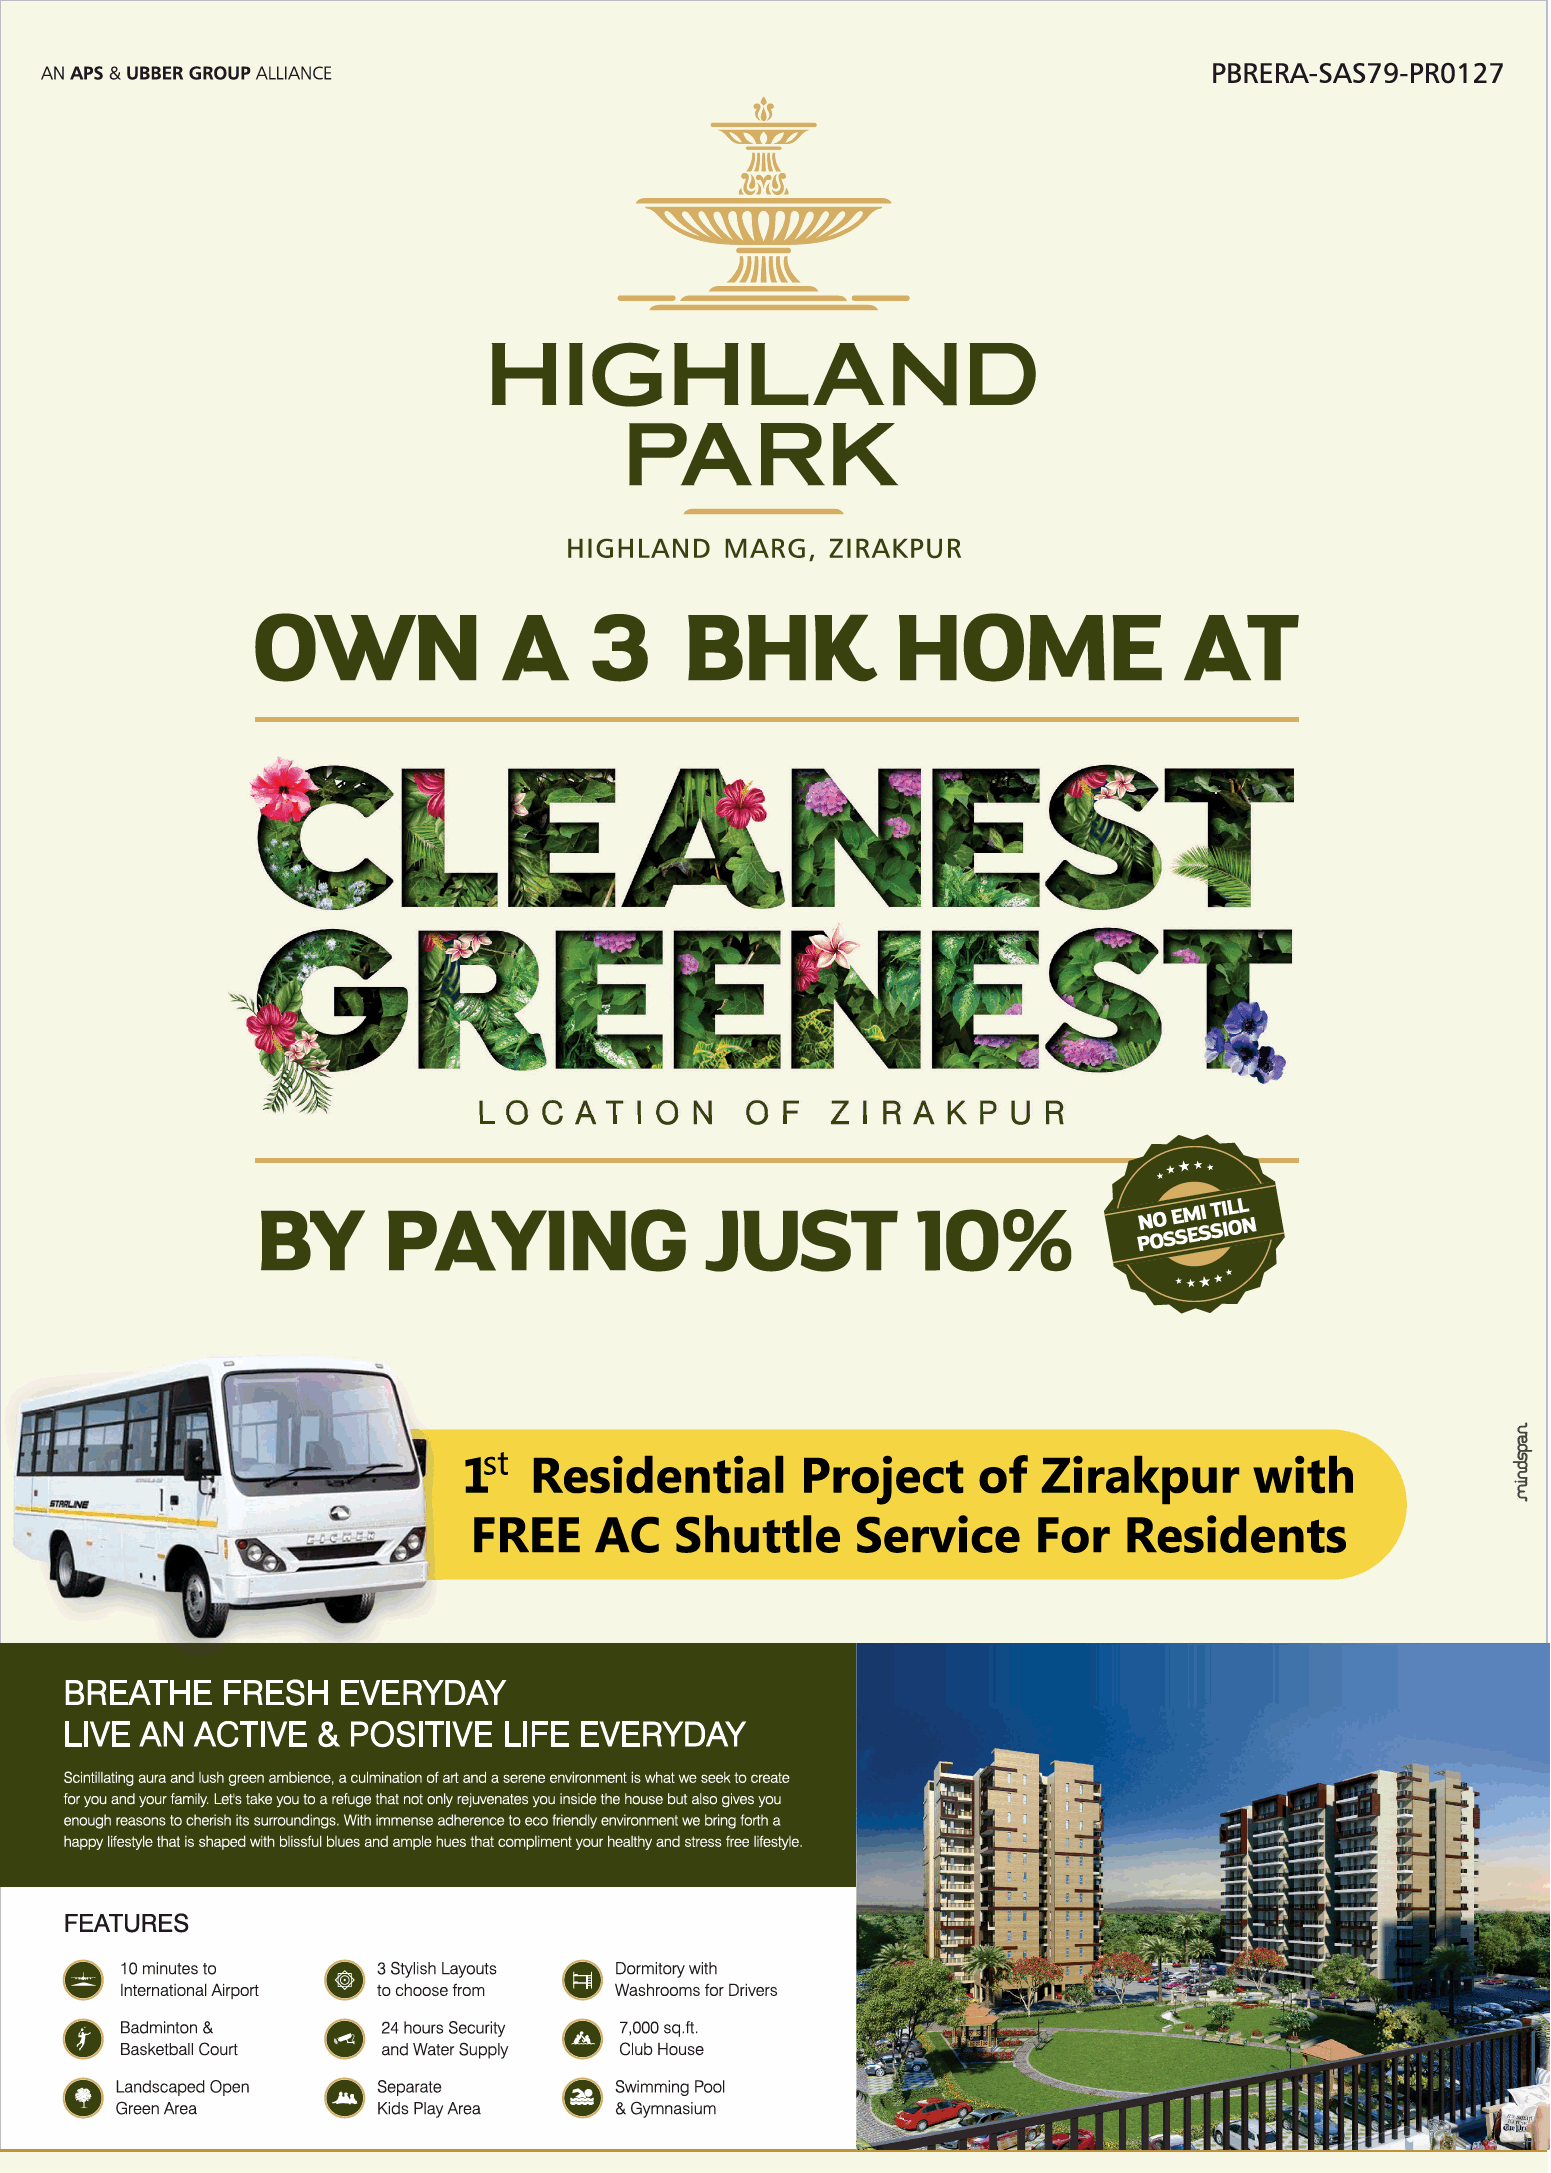 Own a 3 bhk home at cleanest greenest Highland Park in Zirakpur Chandigarh